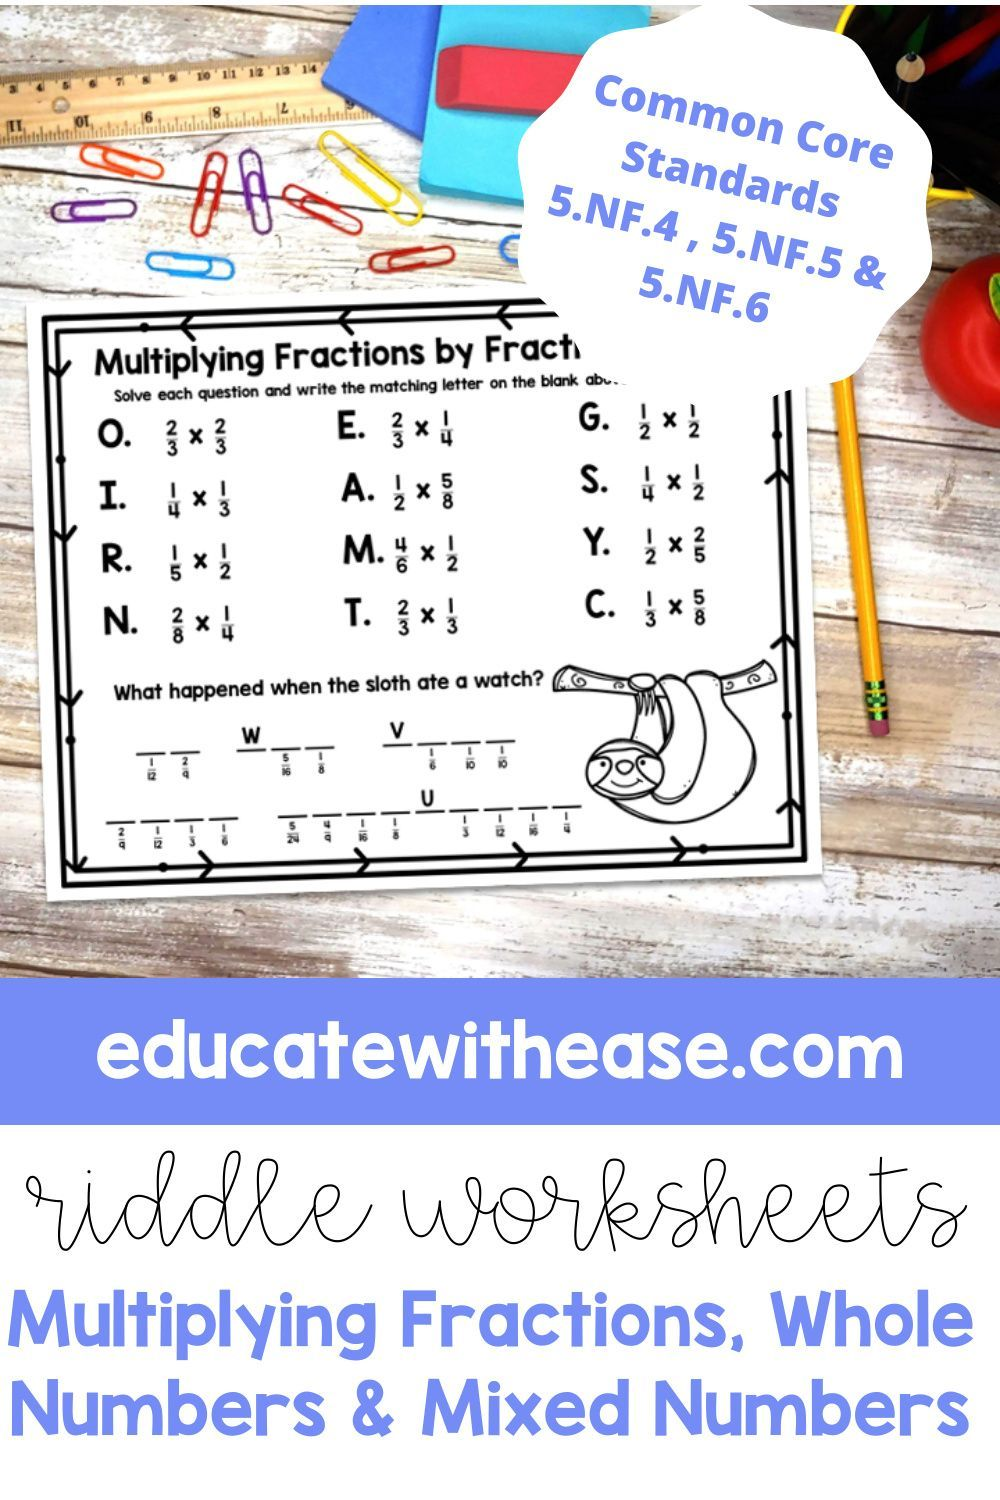 Zoo Multiplying Fractions Whole Numbers Mixed Numbers Riddle Worksheets In 2021 Multiplying Fractions Fractions Fraction Activities [ 1500 x 1000 Pixel ]